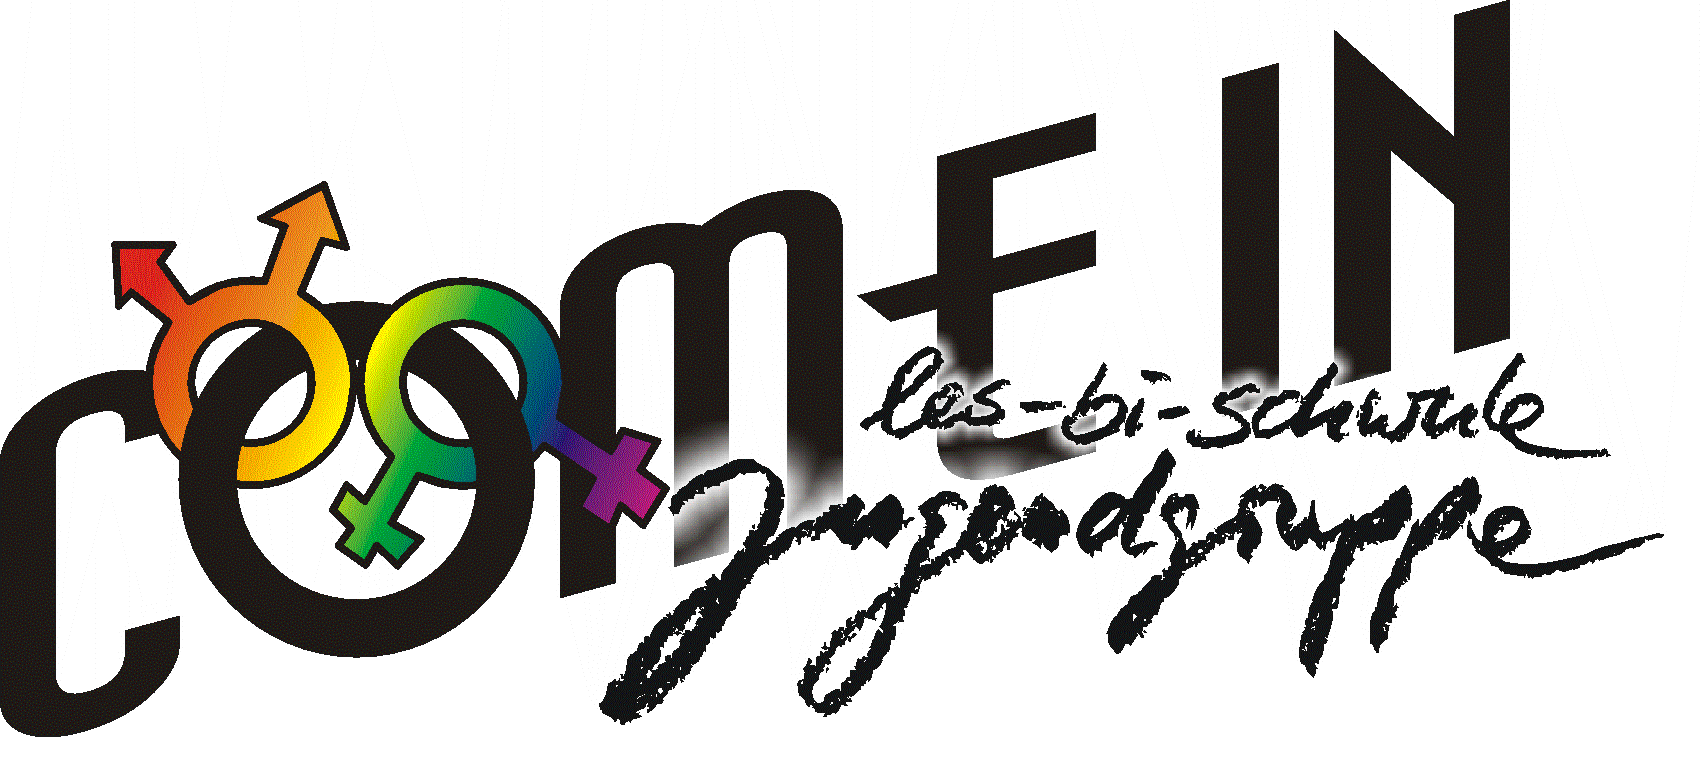 comein-logo-png